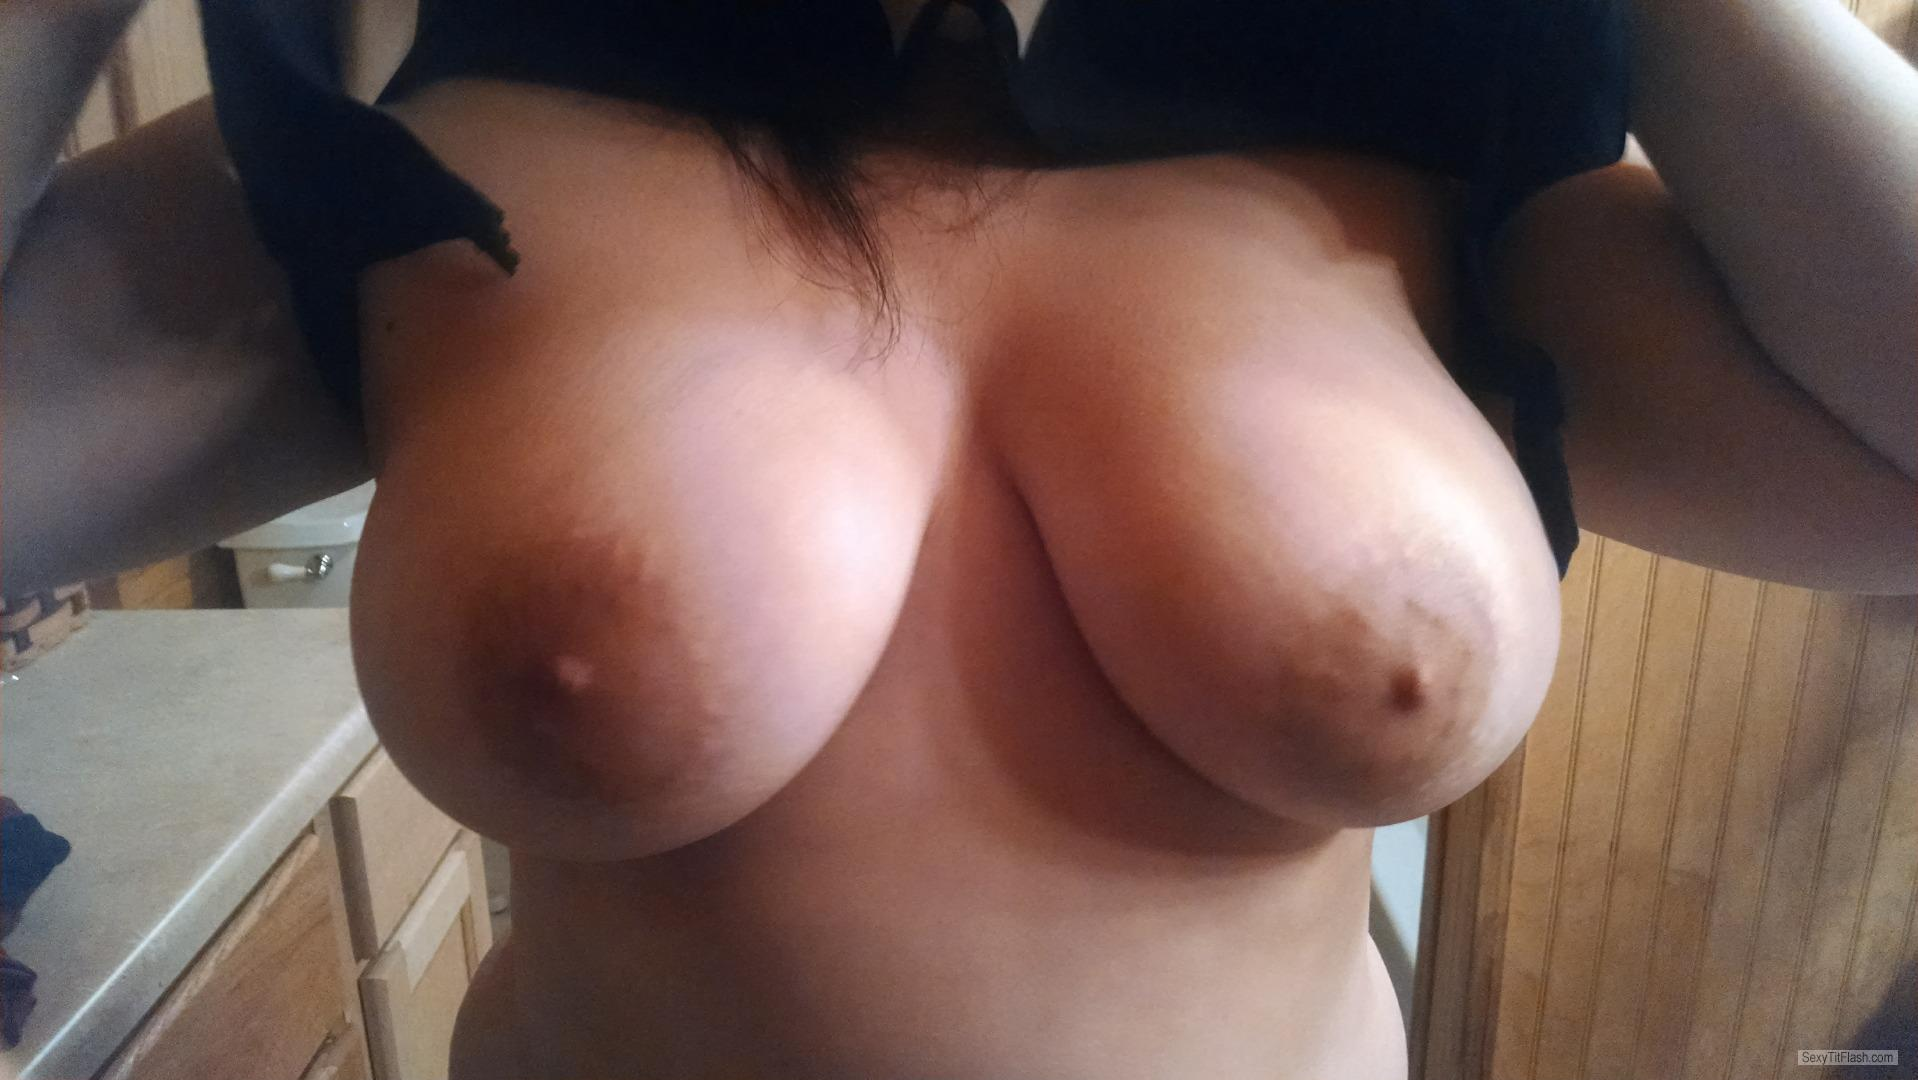 Tit Flash: Girlfriend's Big Tits - Sheps from United States